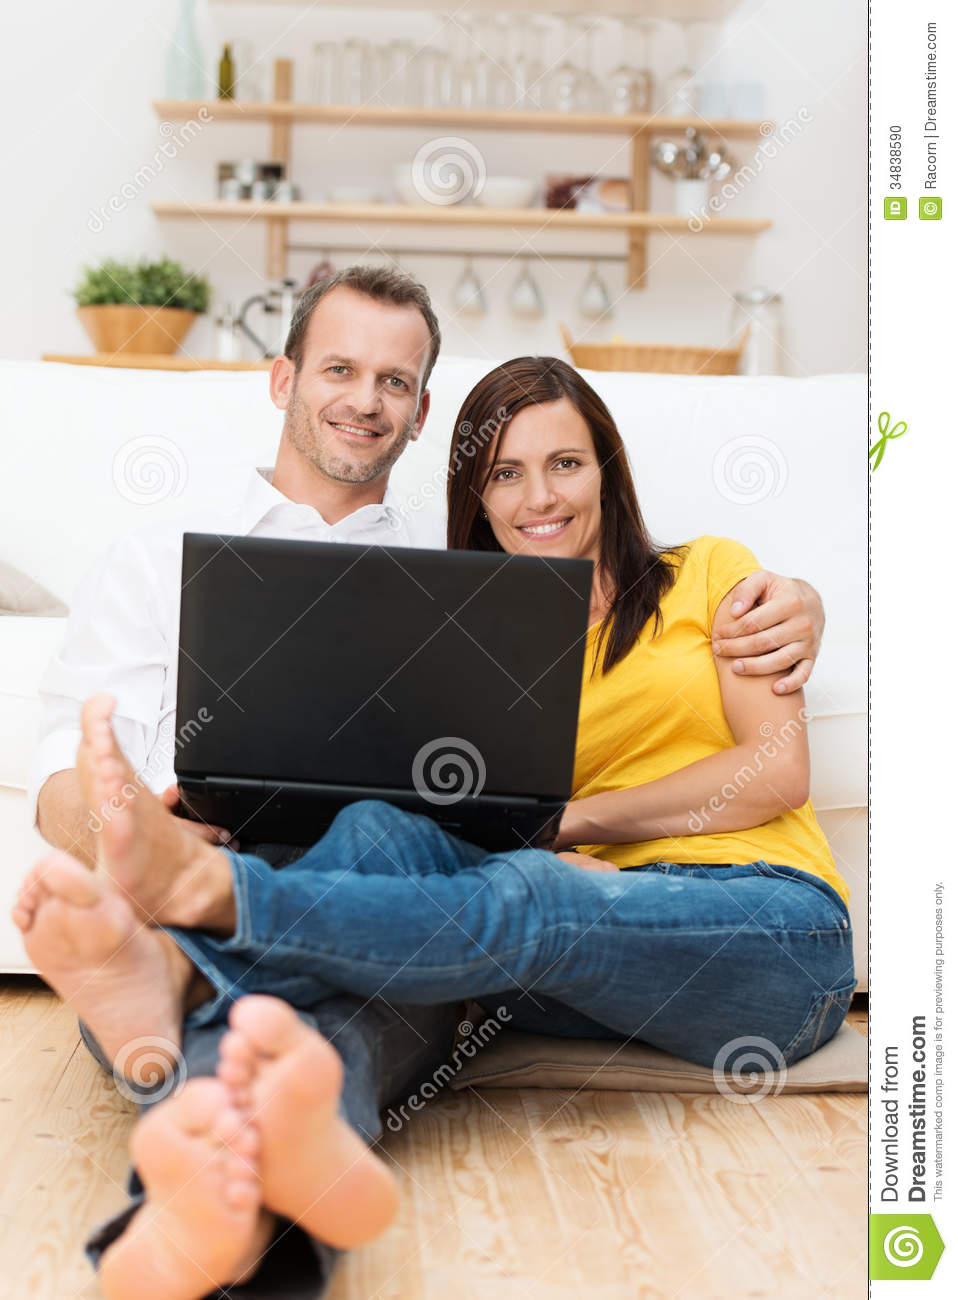 Stock Photo Barefoot Young Couple Relaxing Laptop Computer Sitting Wooden Floor Their Living Room Arm Arm Smiling Image34838590 on Floor Plan 3d Home Design